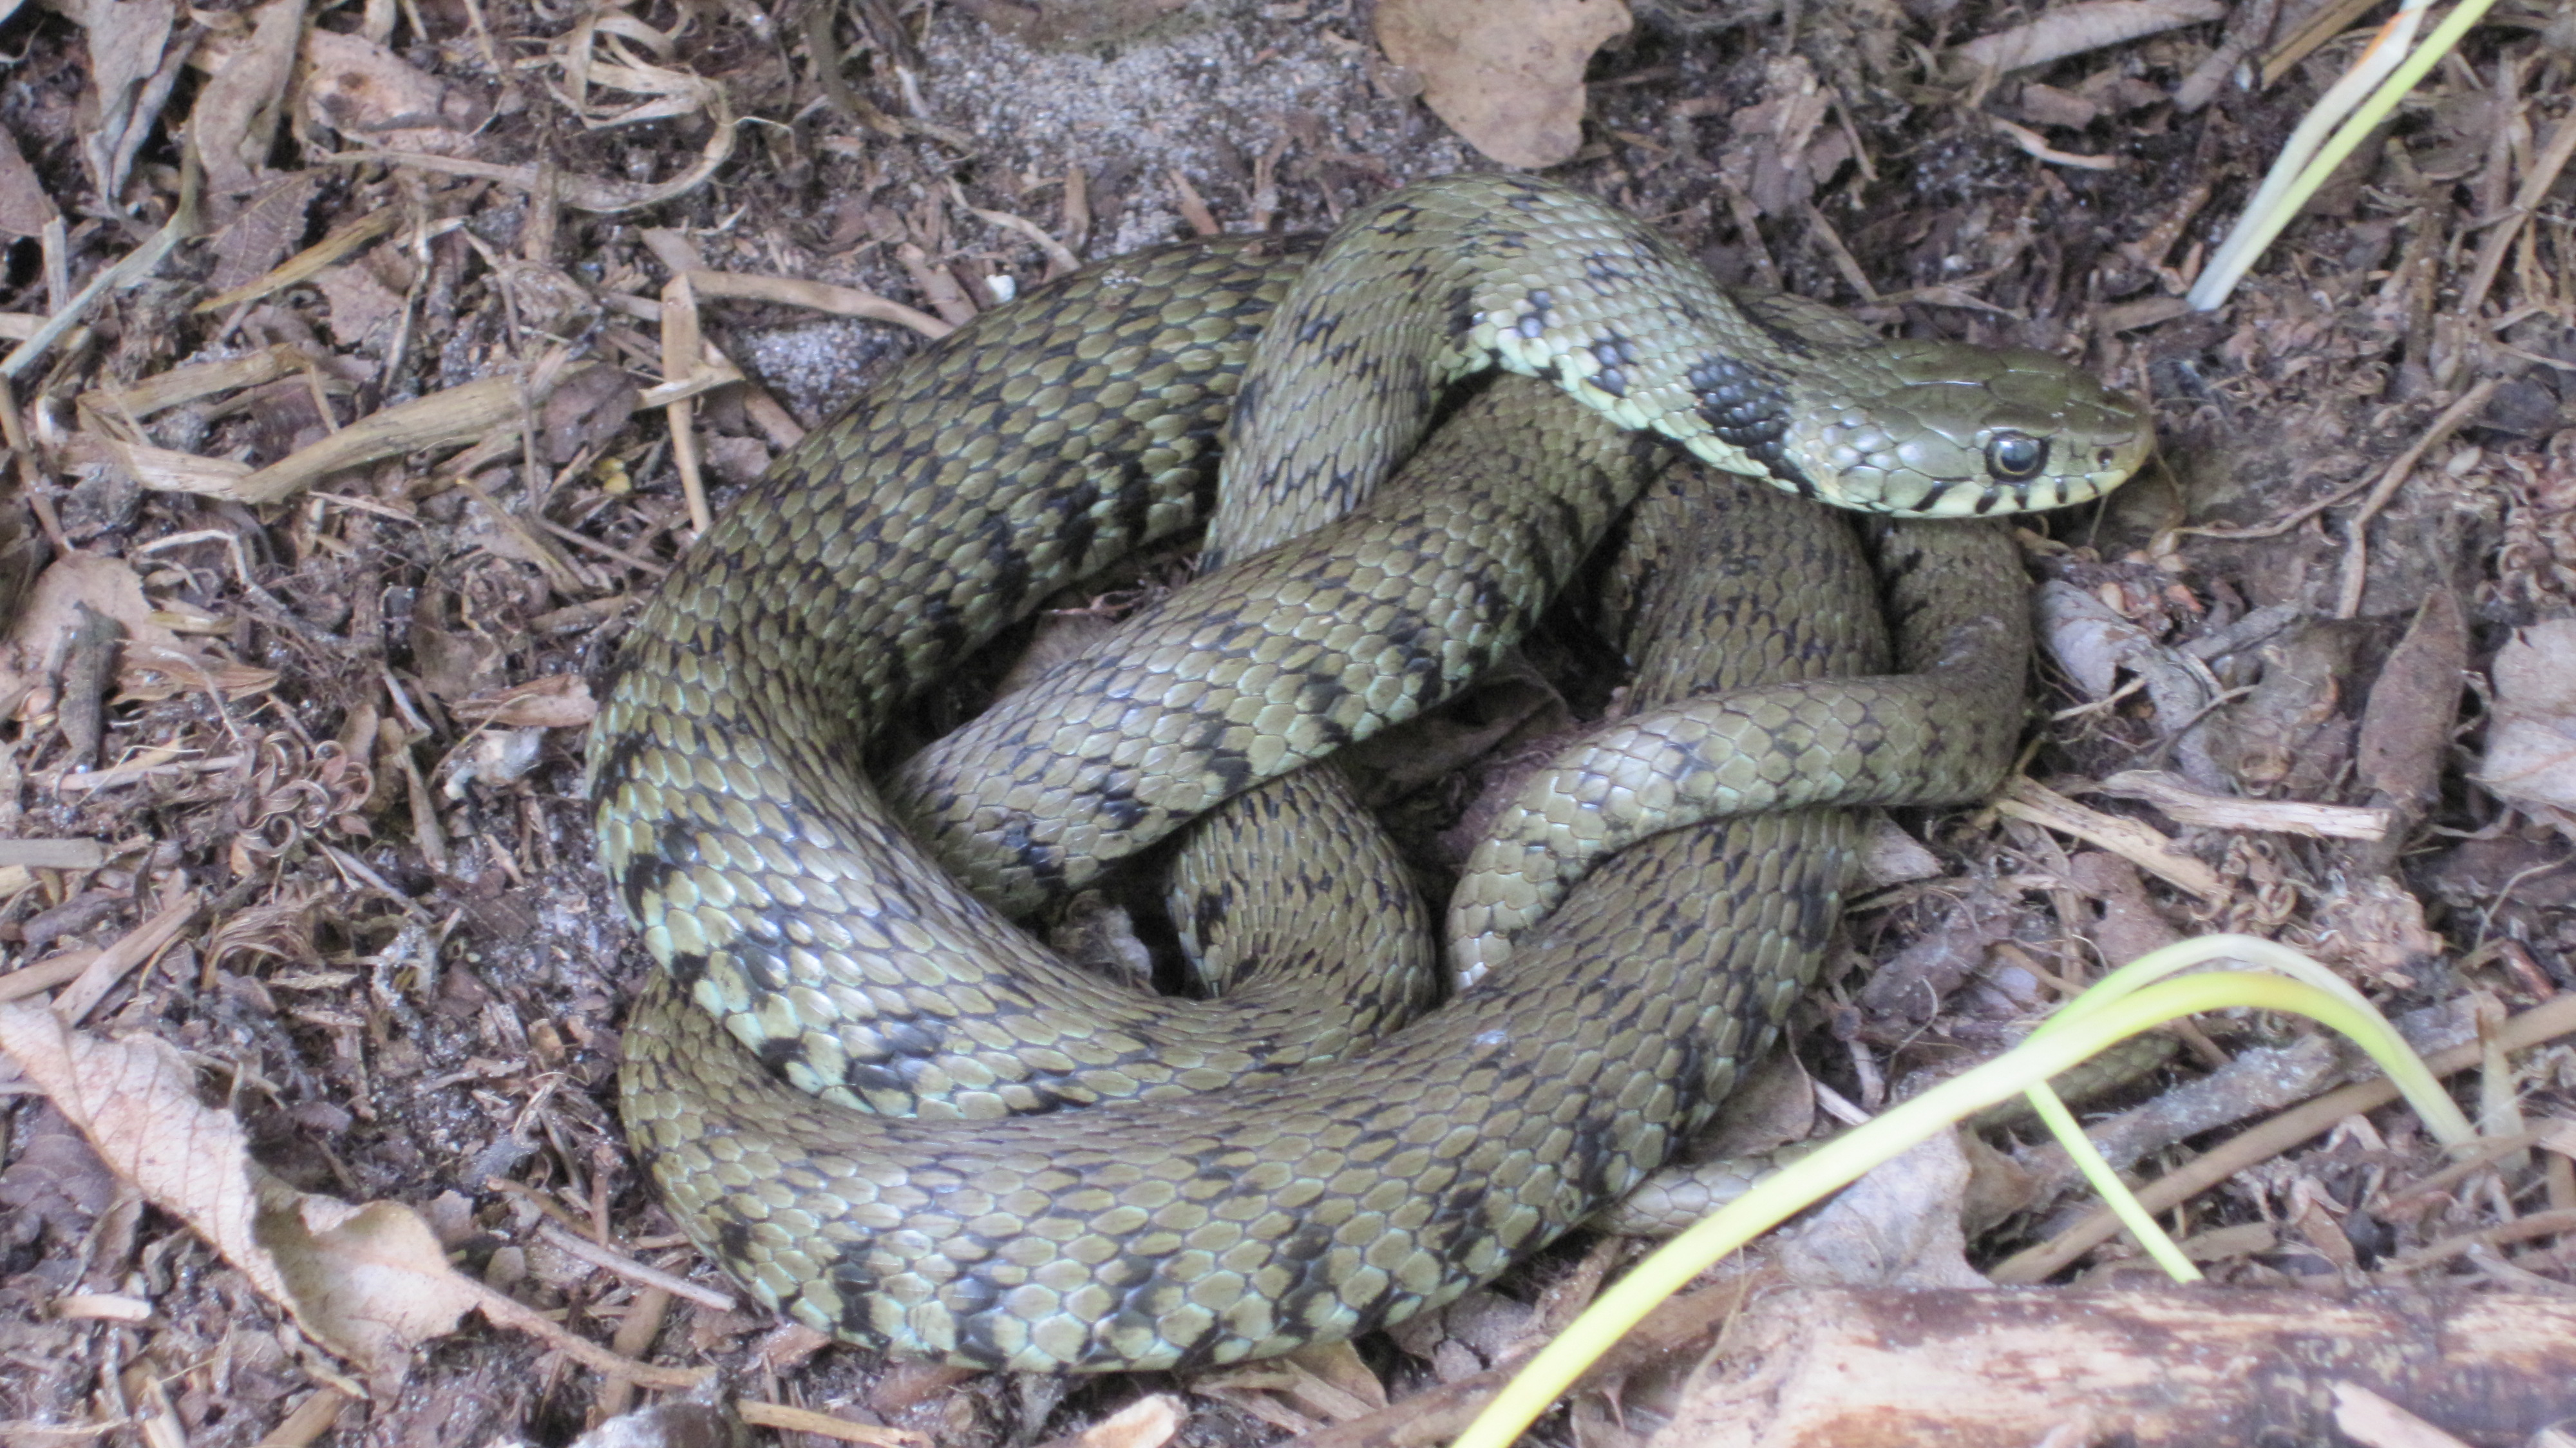 Grass Snake (Natrix natrix) Photo by Henry Glynn